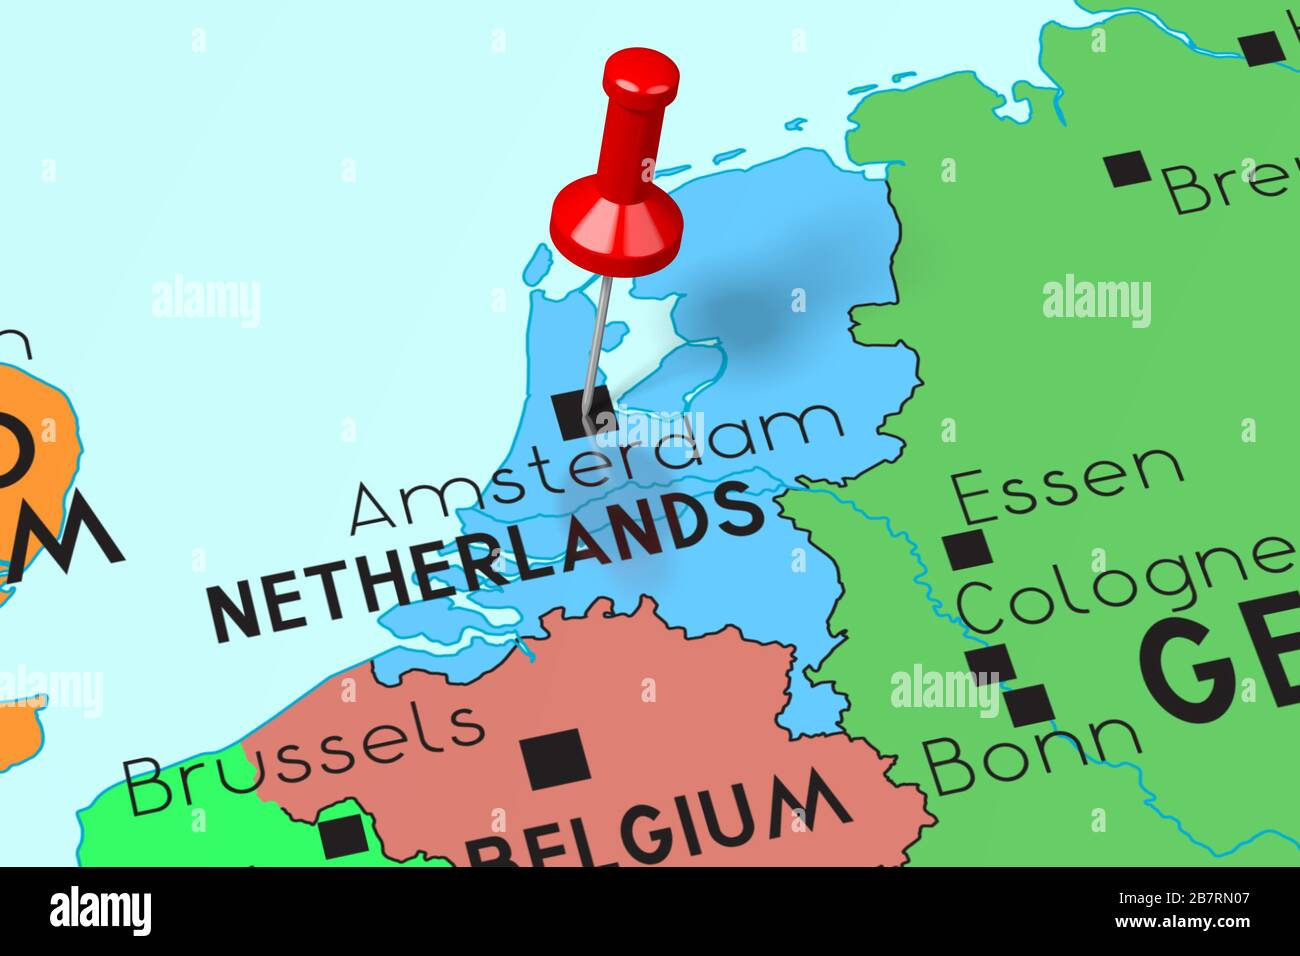 amsterdam map of europe Amsterdam Pinned On Map Europe High Resolution Stock Photography